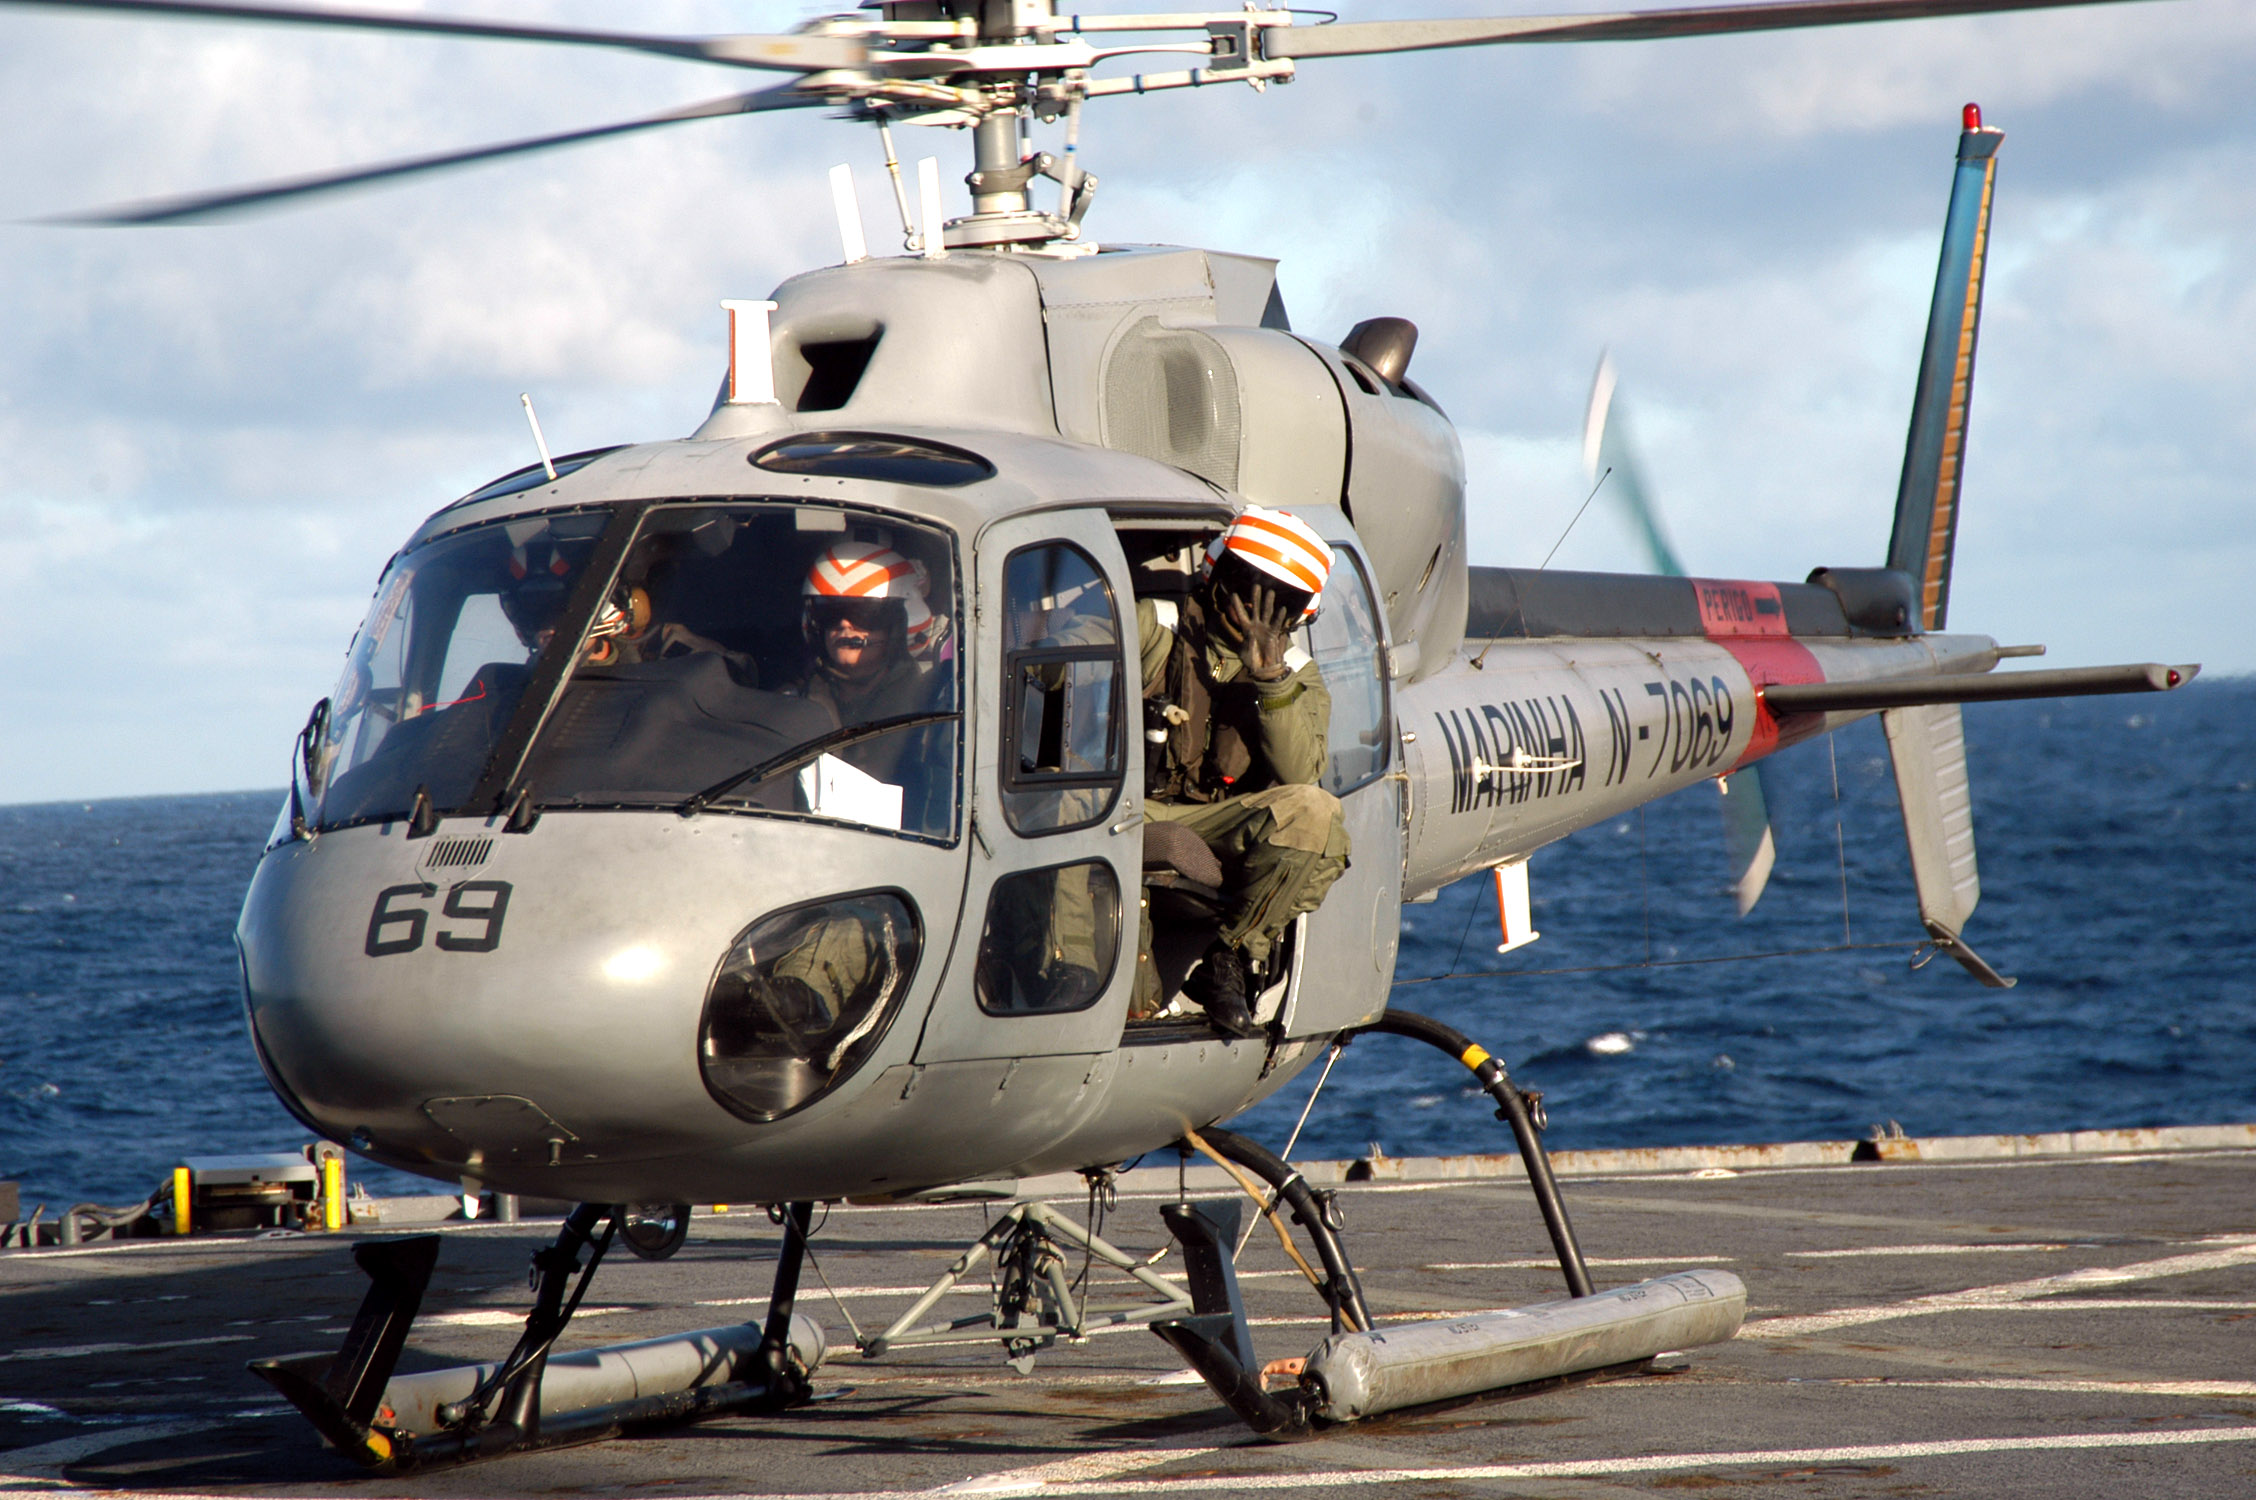 airbus helicopters wiki with File Us Navy 070505 N 7029r 061 Crewmembers From A Brazilian Navy Helicopter Prepare To Take Off From Uss Pearl Harbor  Lsd 52  During Unitas Exercises on File The Airbus A400M  the RAF 27s future transport aircraft MOD 45151806 additionally Victoria Police Air Wing together with Airbus Beluga F GSTC airbus Industrie 65538 together with File US Navy 070505 N 7029R 061 Crewmembers from a Brazilian navy helicopter prepare to take off from USS Pearl Harbor  LSD 52  during UNITAS exercises further Eurocopter Fennec.